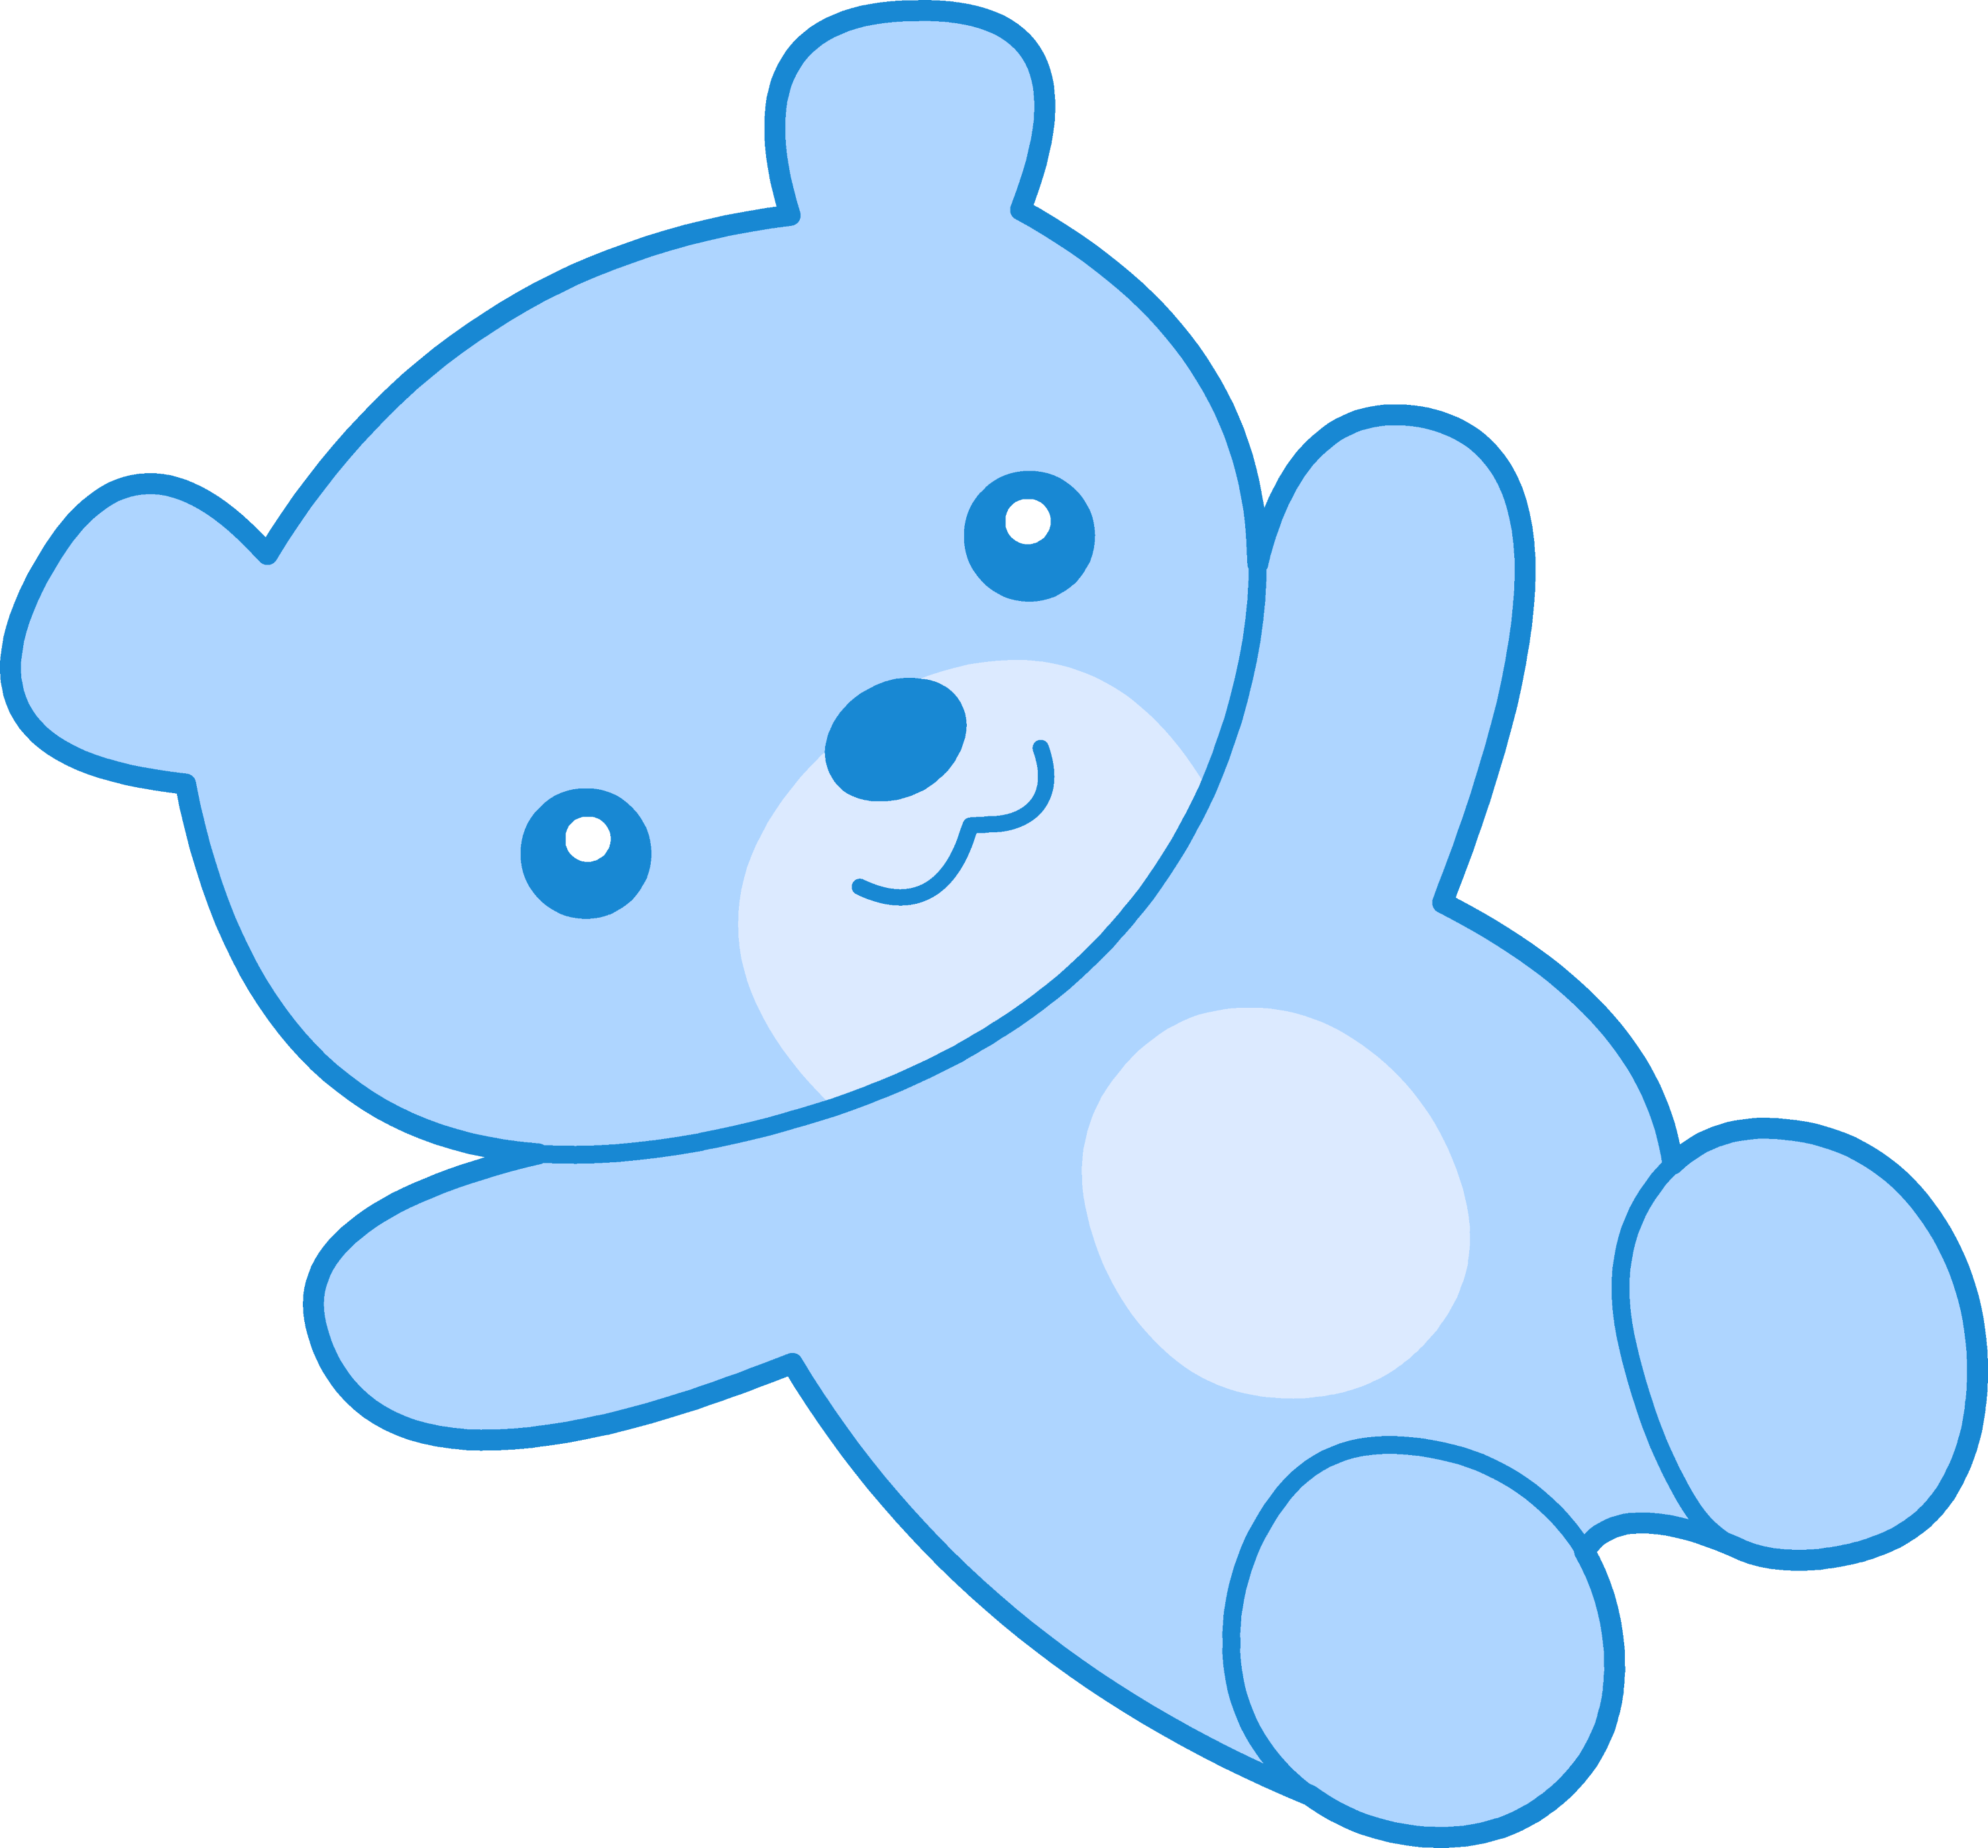 Cute blue teddy bear clipart free clip art cute blue teddy bear clip art altavistaventures Image collections